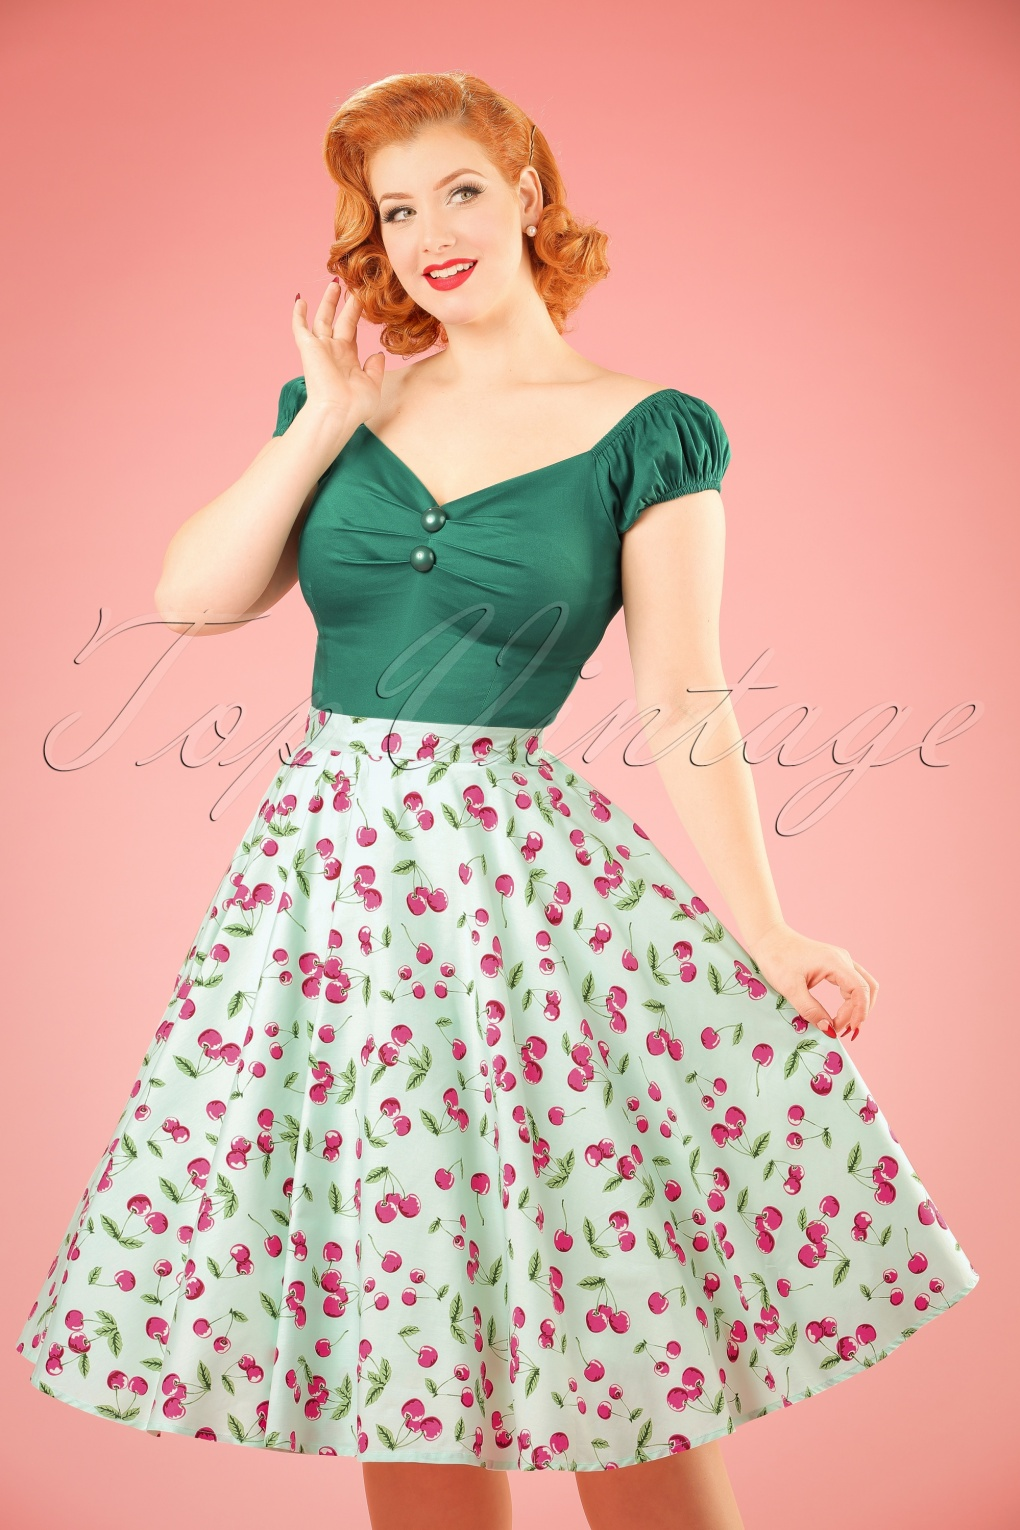 1950s Skirts for Sale: Poodle, Pencil, and Circle Skirts 50s April Cherry Swing Skirt in Mint Green £34.70 AT vintagedancer.com